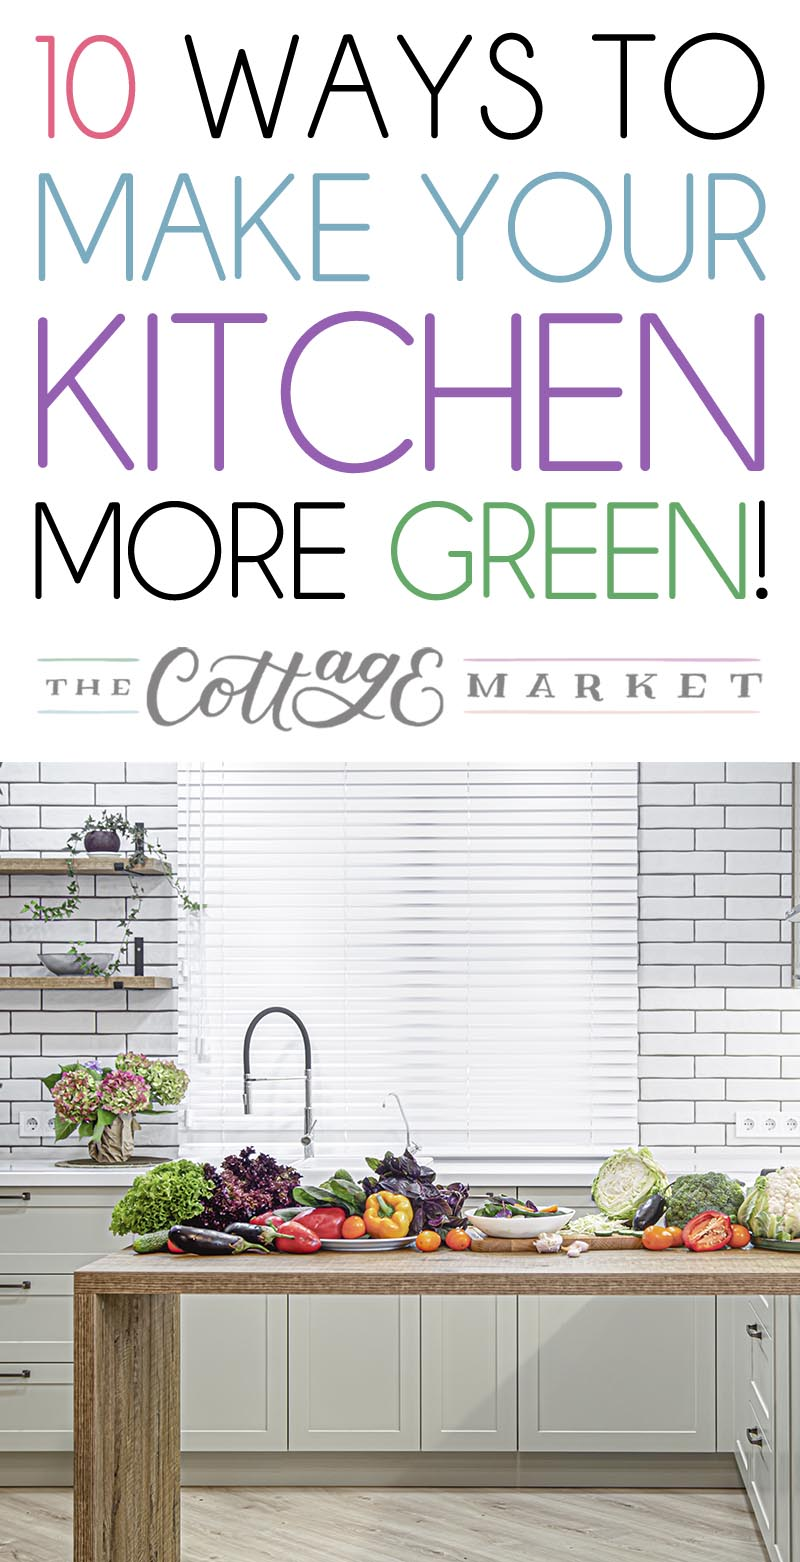 Come and Check Out These Easy 10 Ways To Make Your Kitchen More Green. Simple steps that make a big difference for Mother Earth!